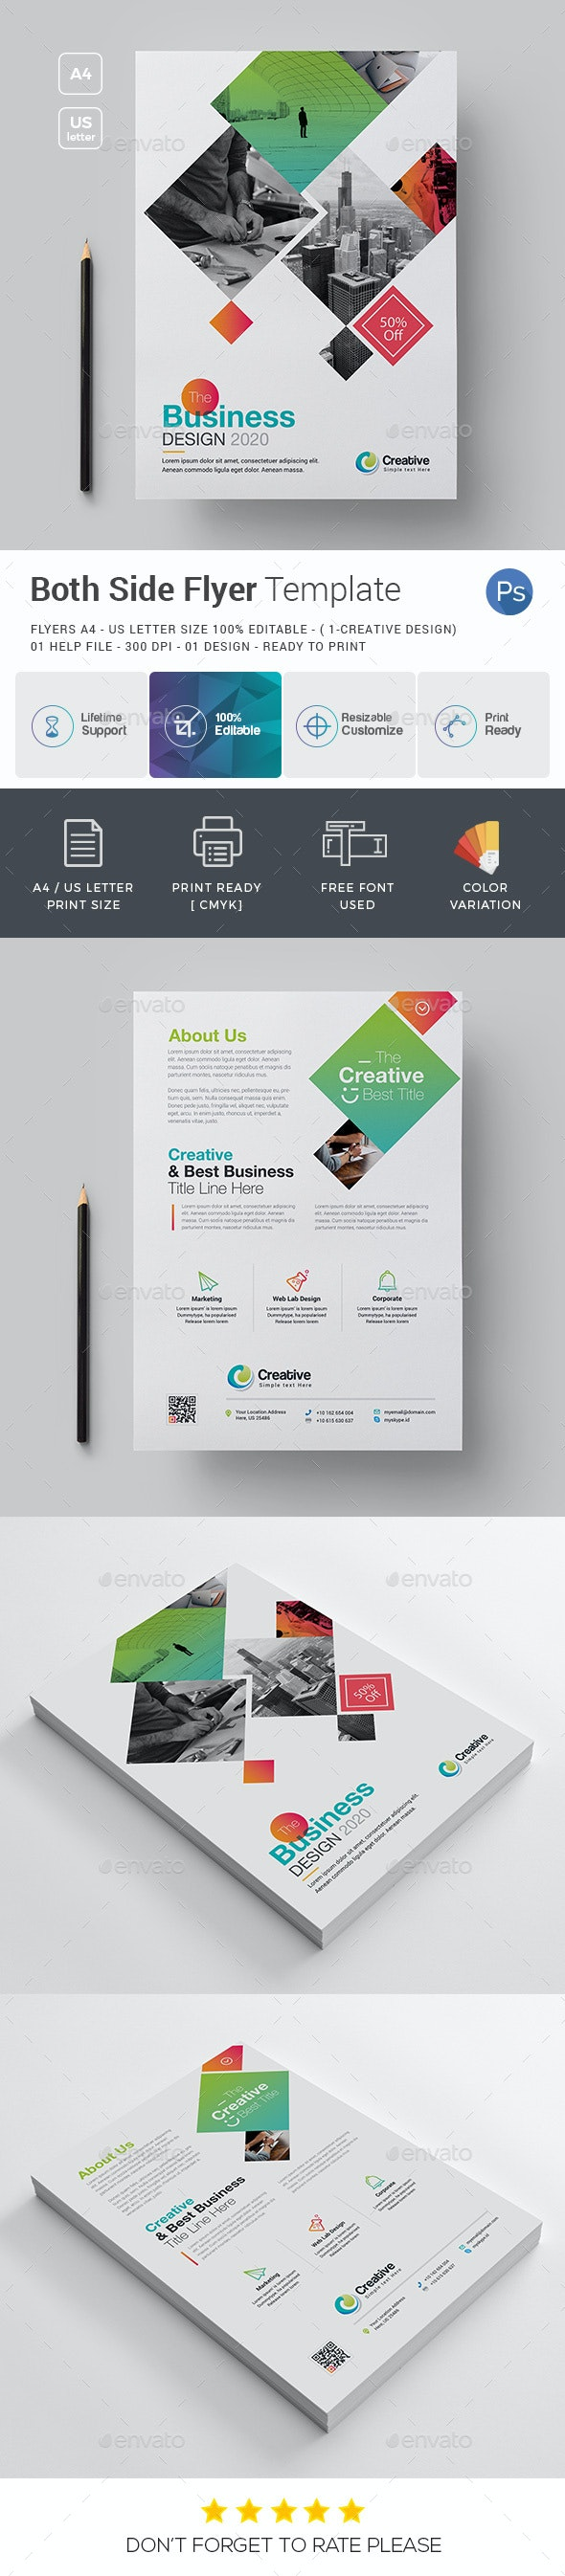 Both Side Flyer - Corporate Flyers